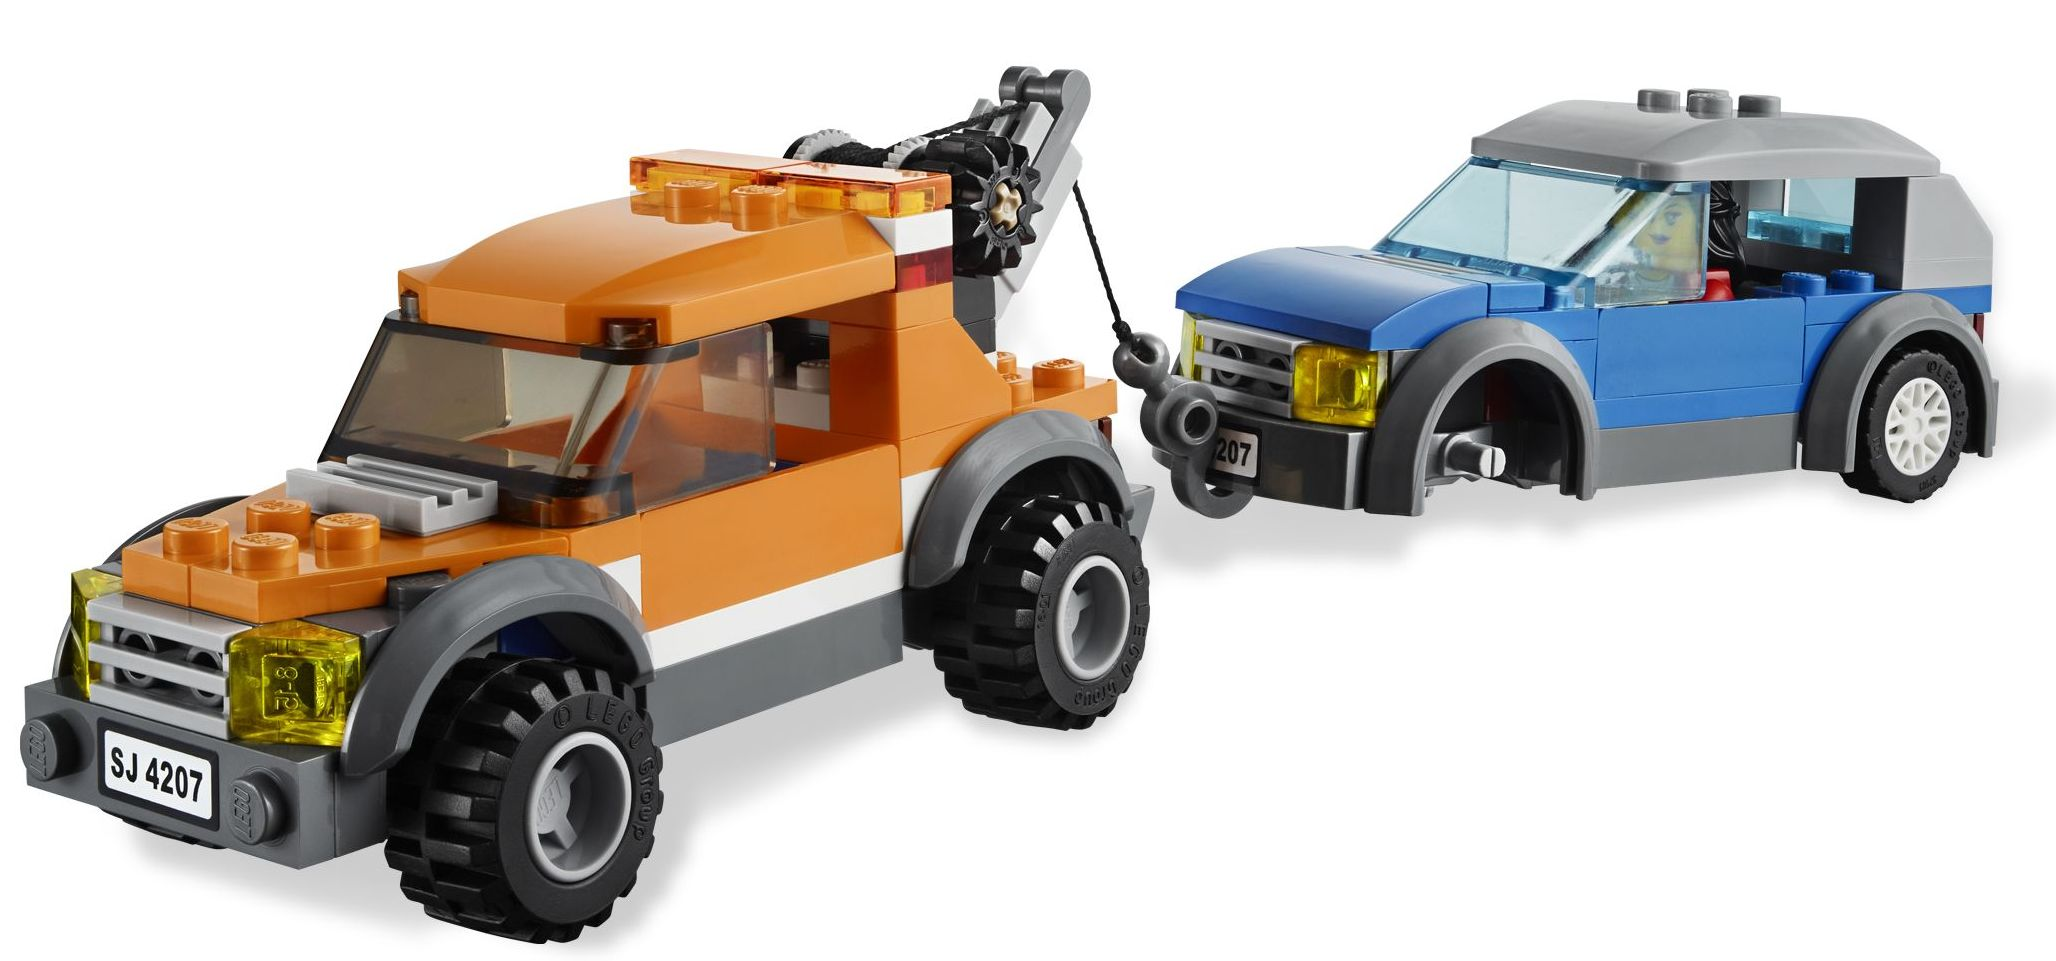 Lego City 4207 Garage Car Parking Released I Brick City